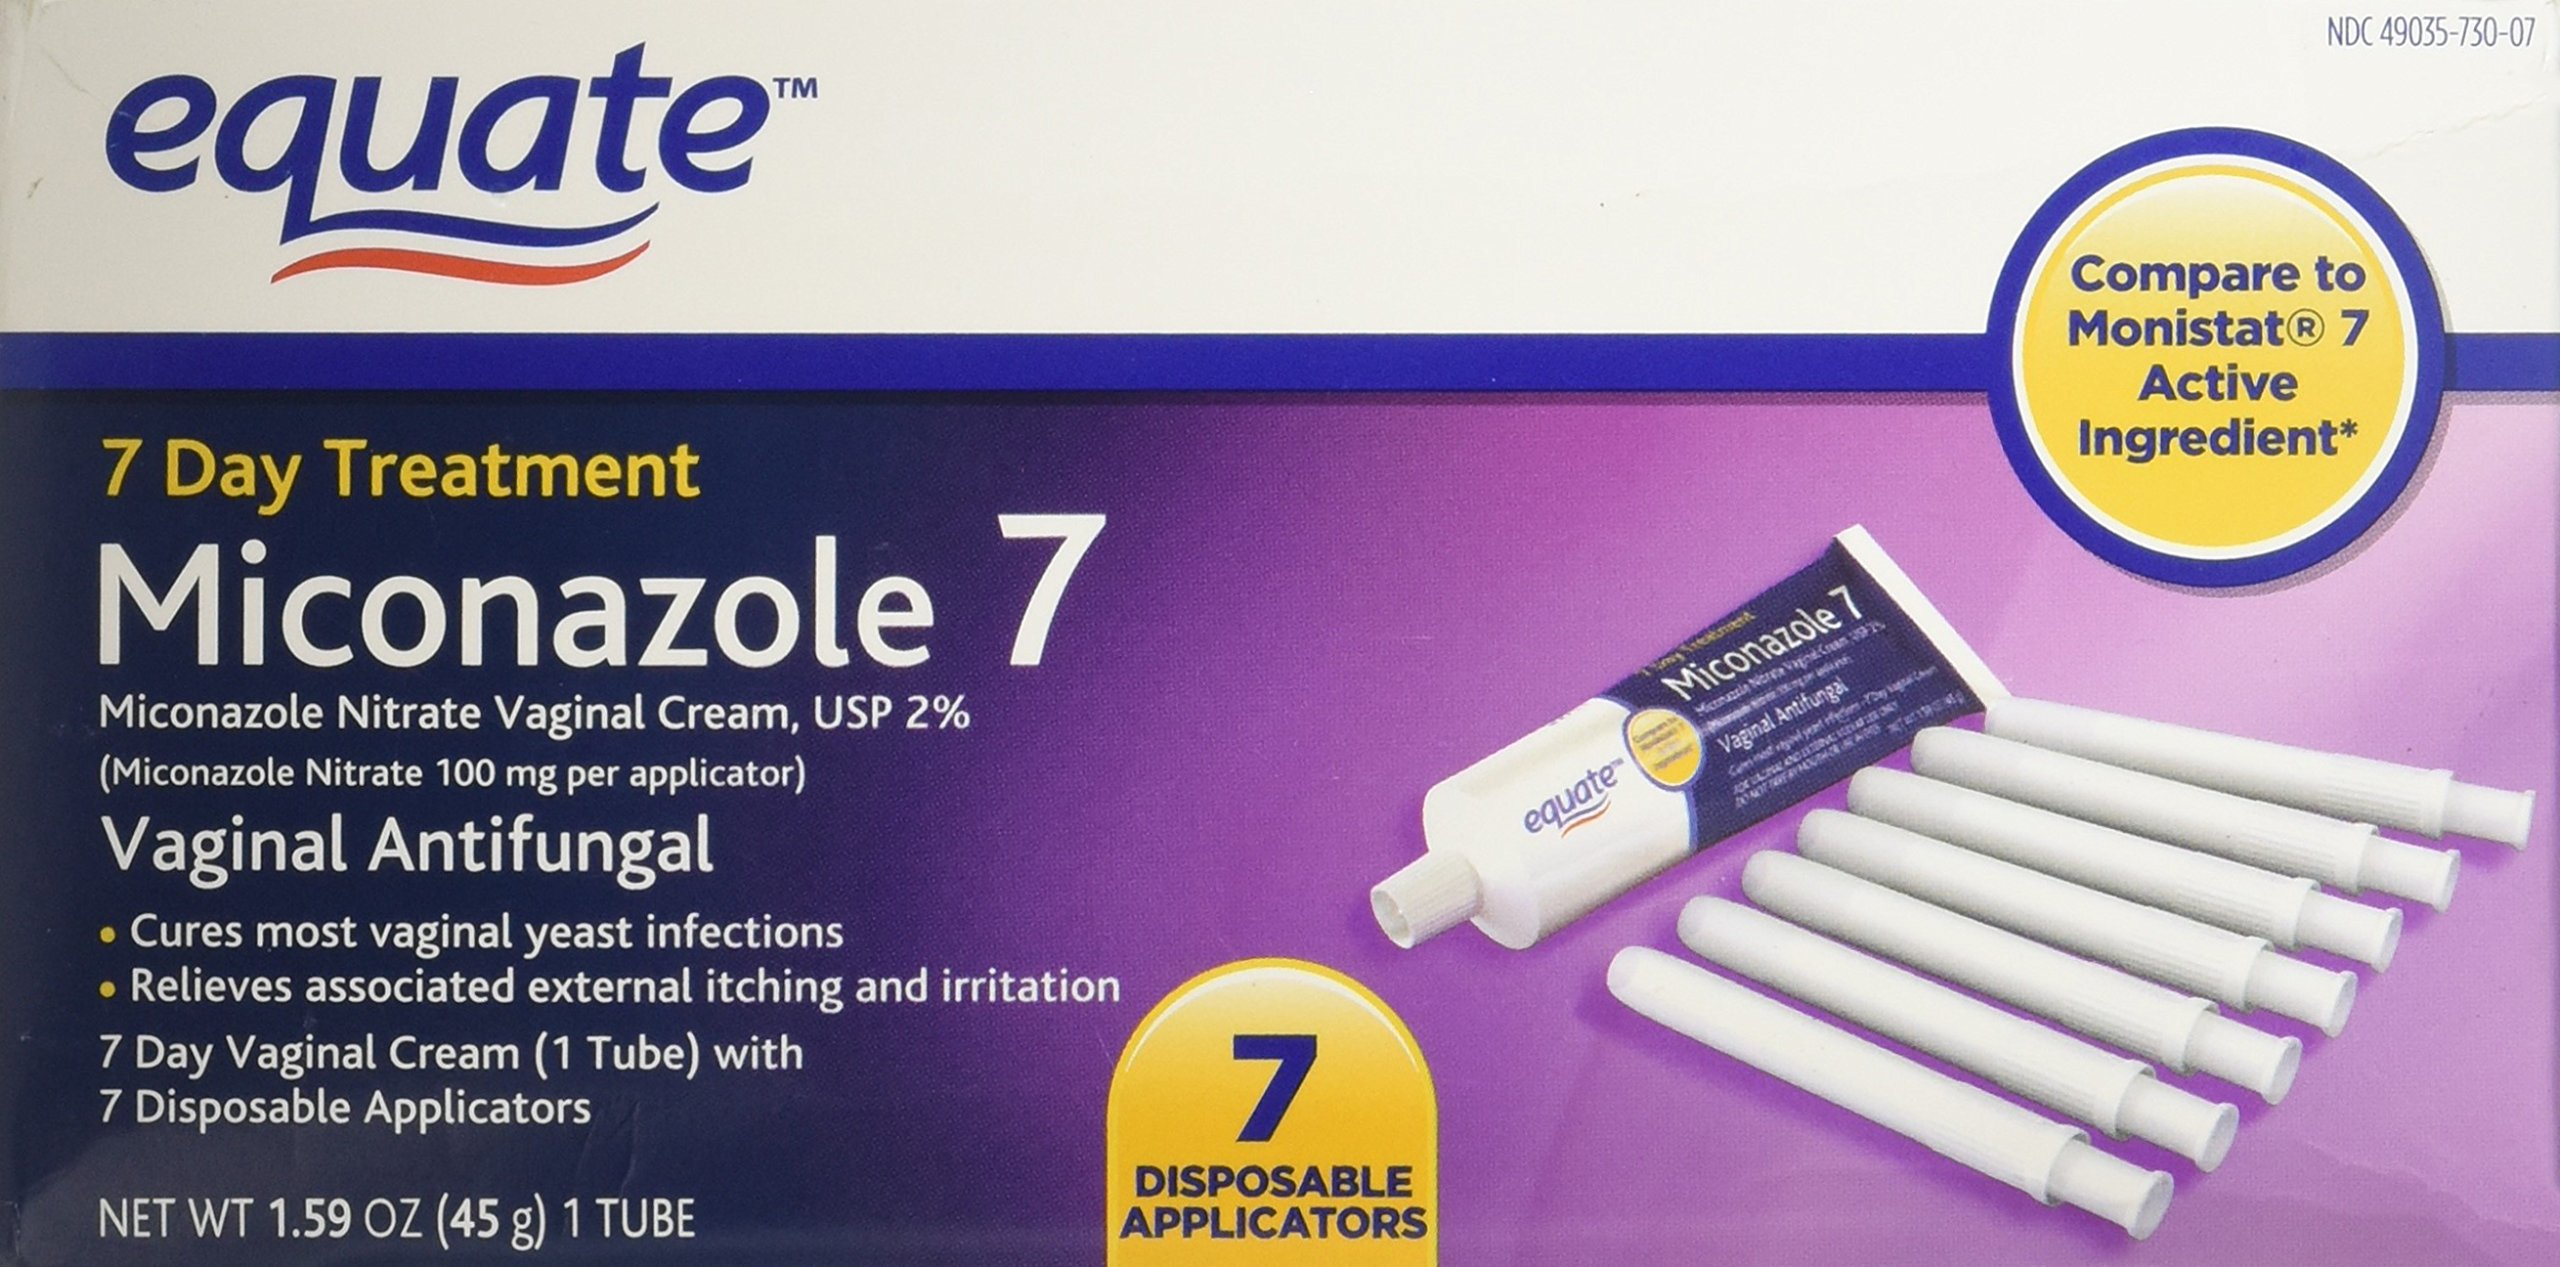 Compare to Monistat 7 Active Ingredient. - Equate - Miconazole 7 Day Treatment, Vaginal Antifungal Cream, 1.59 oz by Suburban (Image #1)